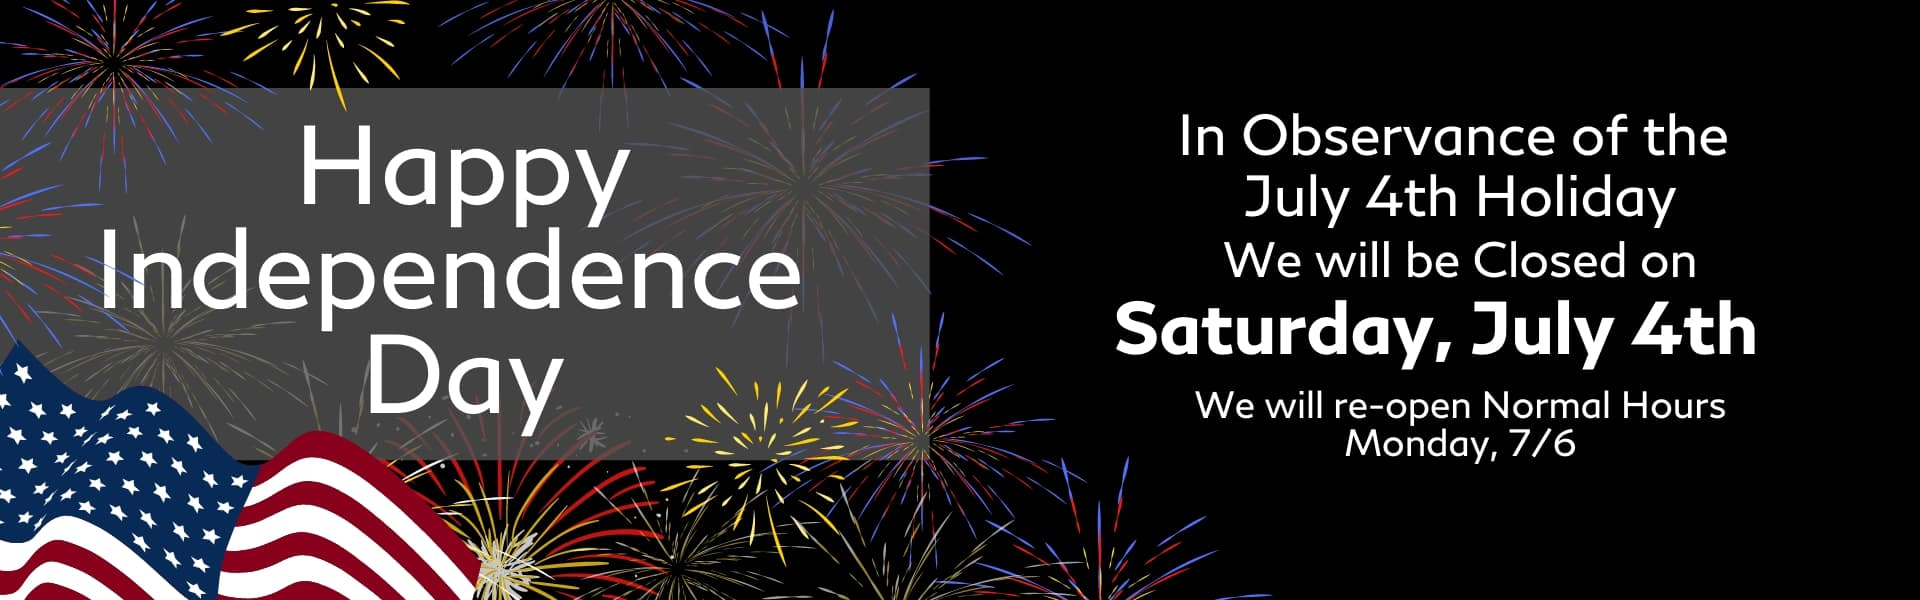 Happy Independence Day. In Observance of the July 4th Holiday, we will be Closed on Saturday, July 4th. We will re-open Normal Hours, Monday, 7/6.